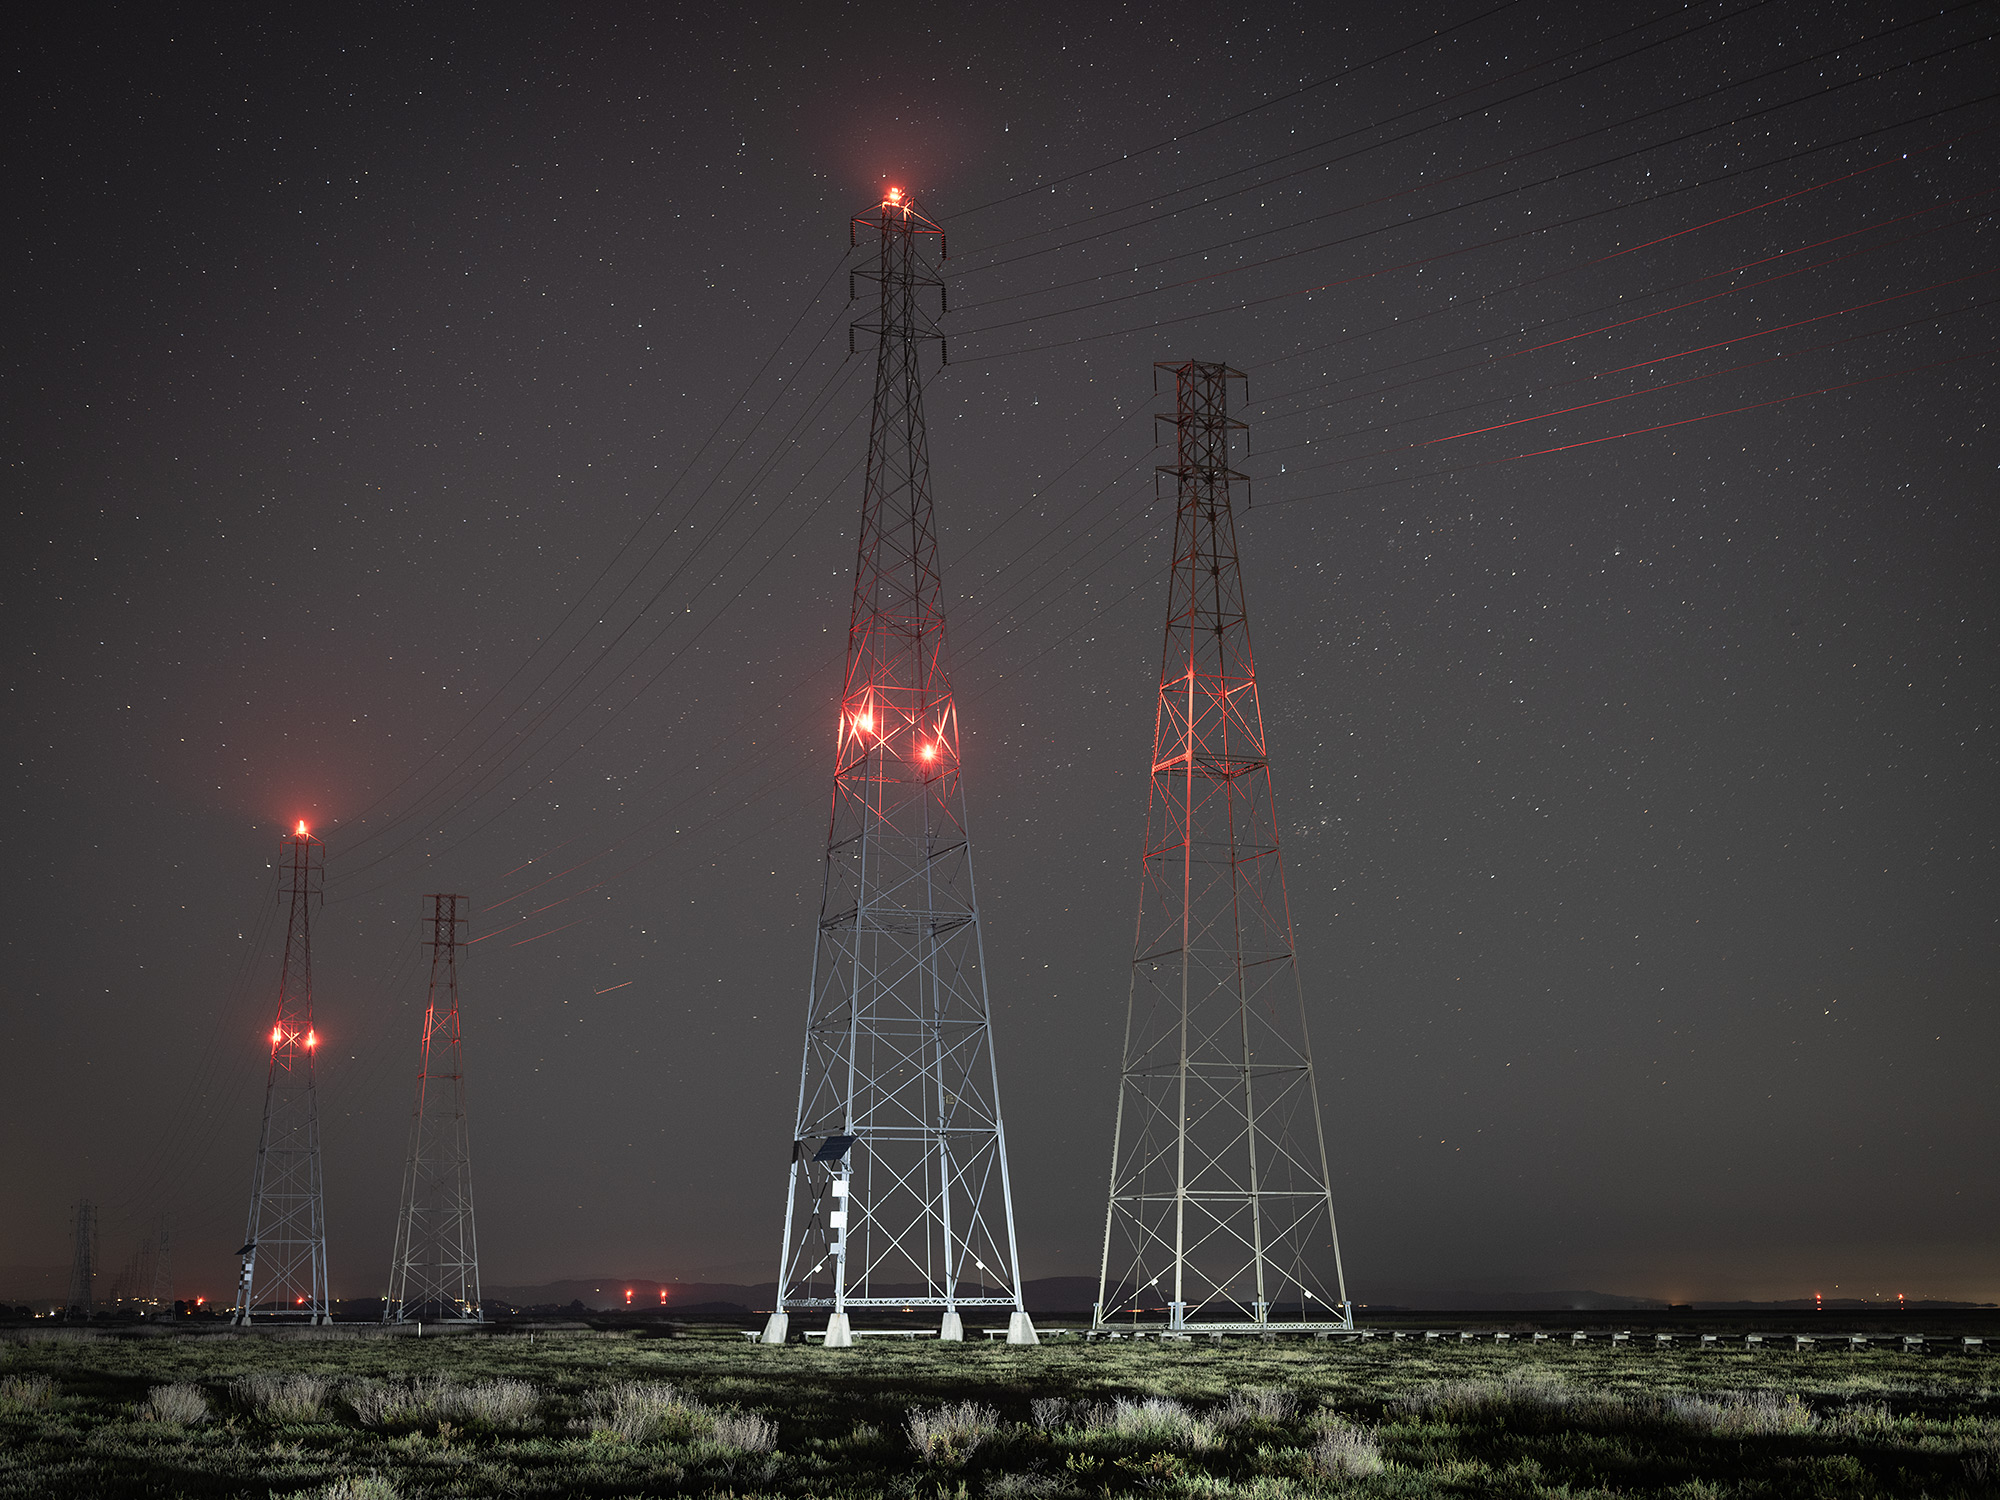 Image of power lines at night with stars in the background.